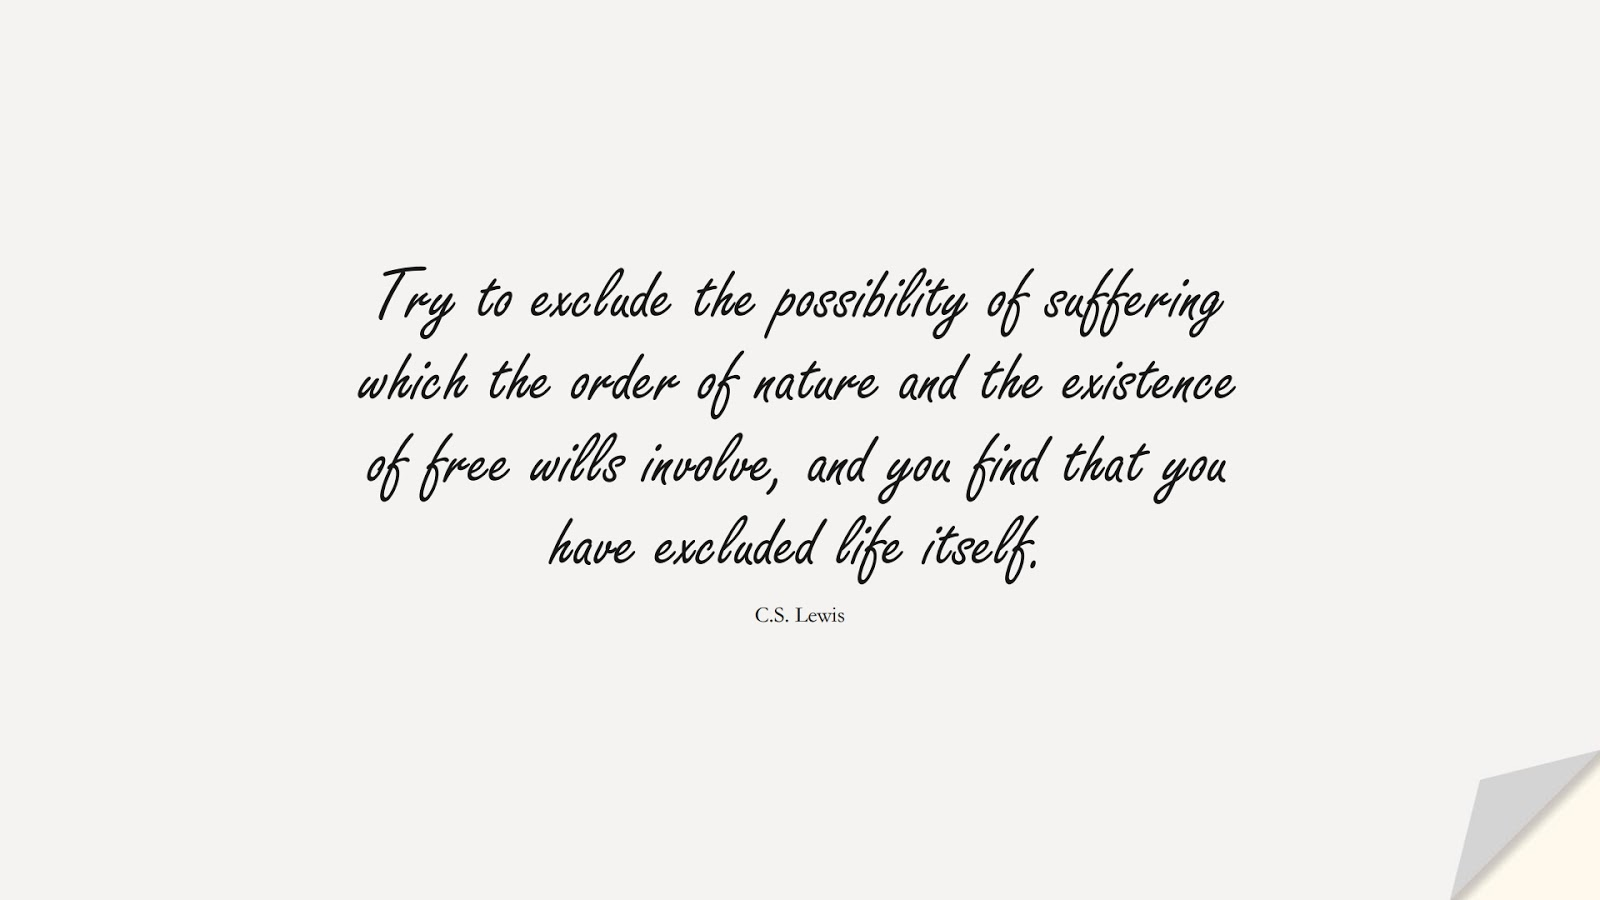 Try to exclude the possibility of suffering which the order of nature and the existence of free wills involve, and you find that you have excluded life itself. (C.S. Lewis);  #BestQuotes